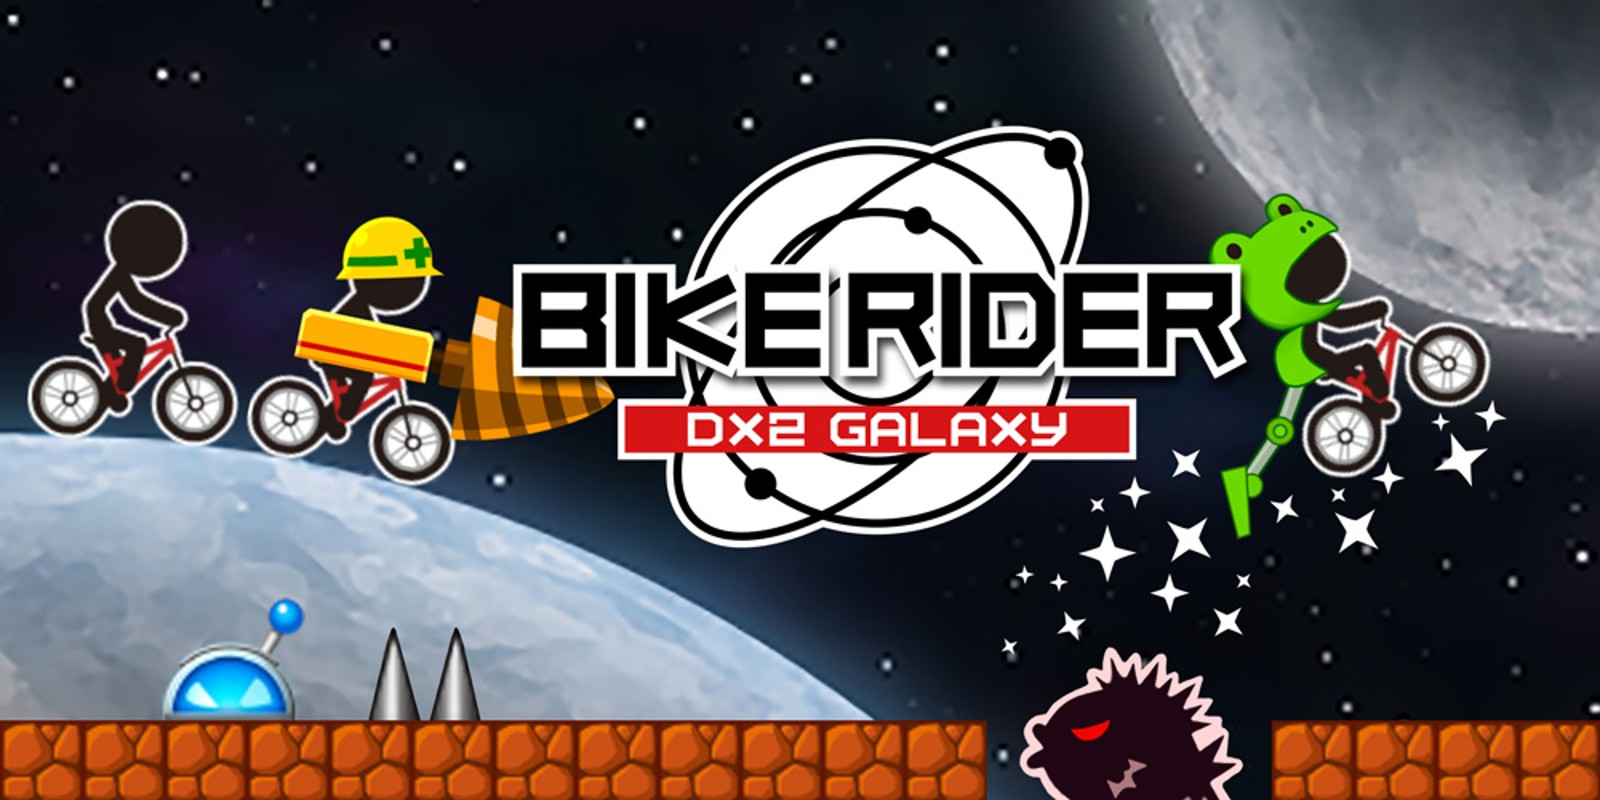 BIKE RIDER DX2 : GALAXY